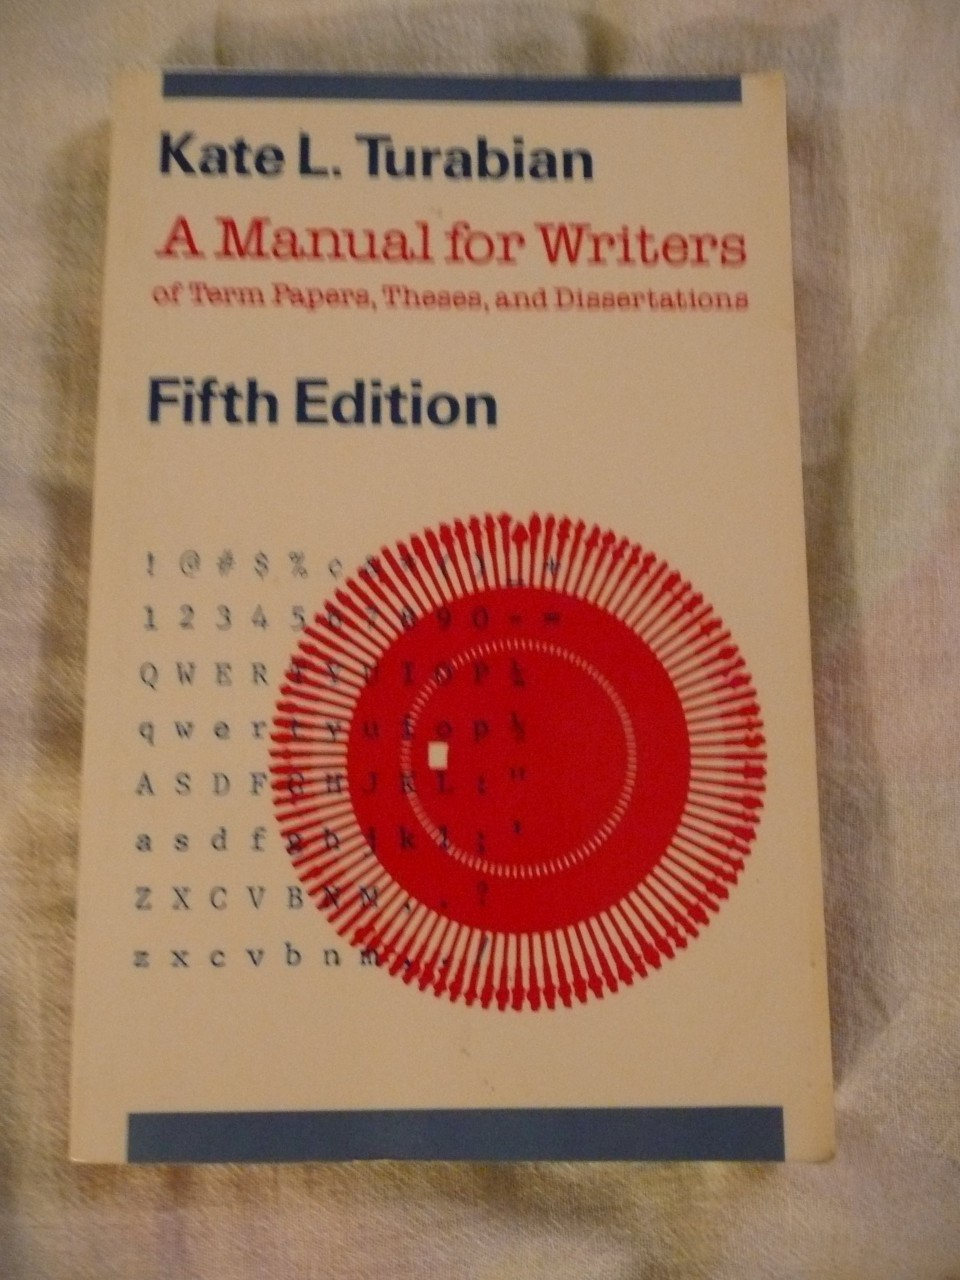 014 Research Paper Manual For Writers Of Papers Theses And Dissertations Magnificent A Amazon 9th Edition 8th 13 960